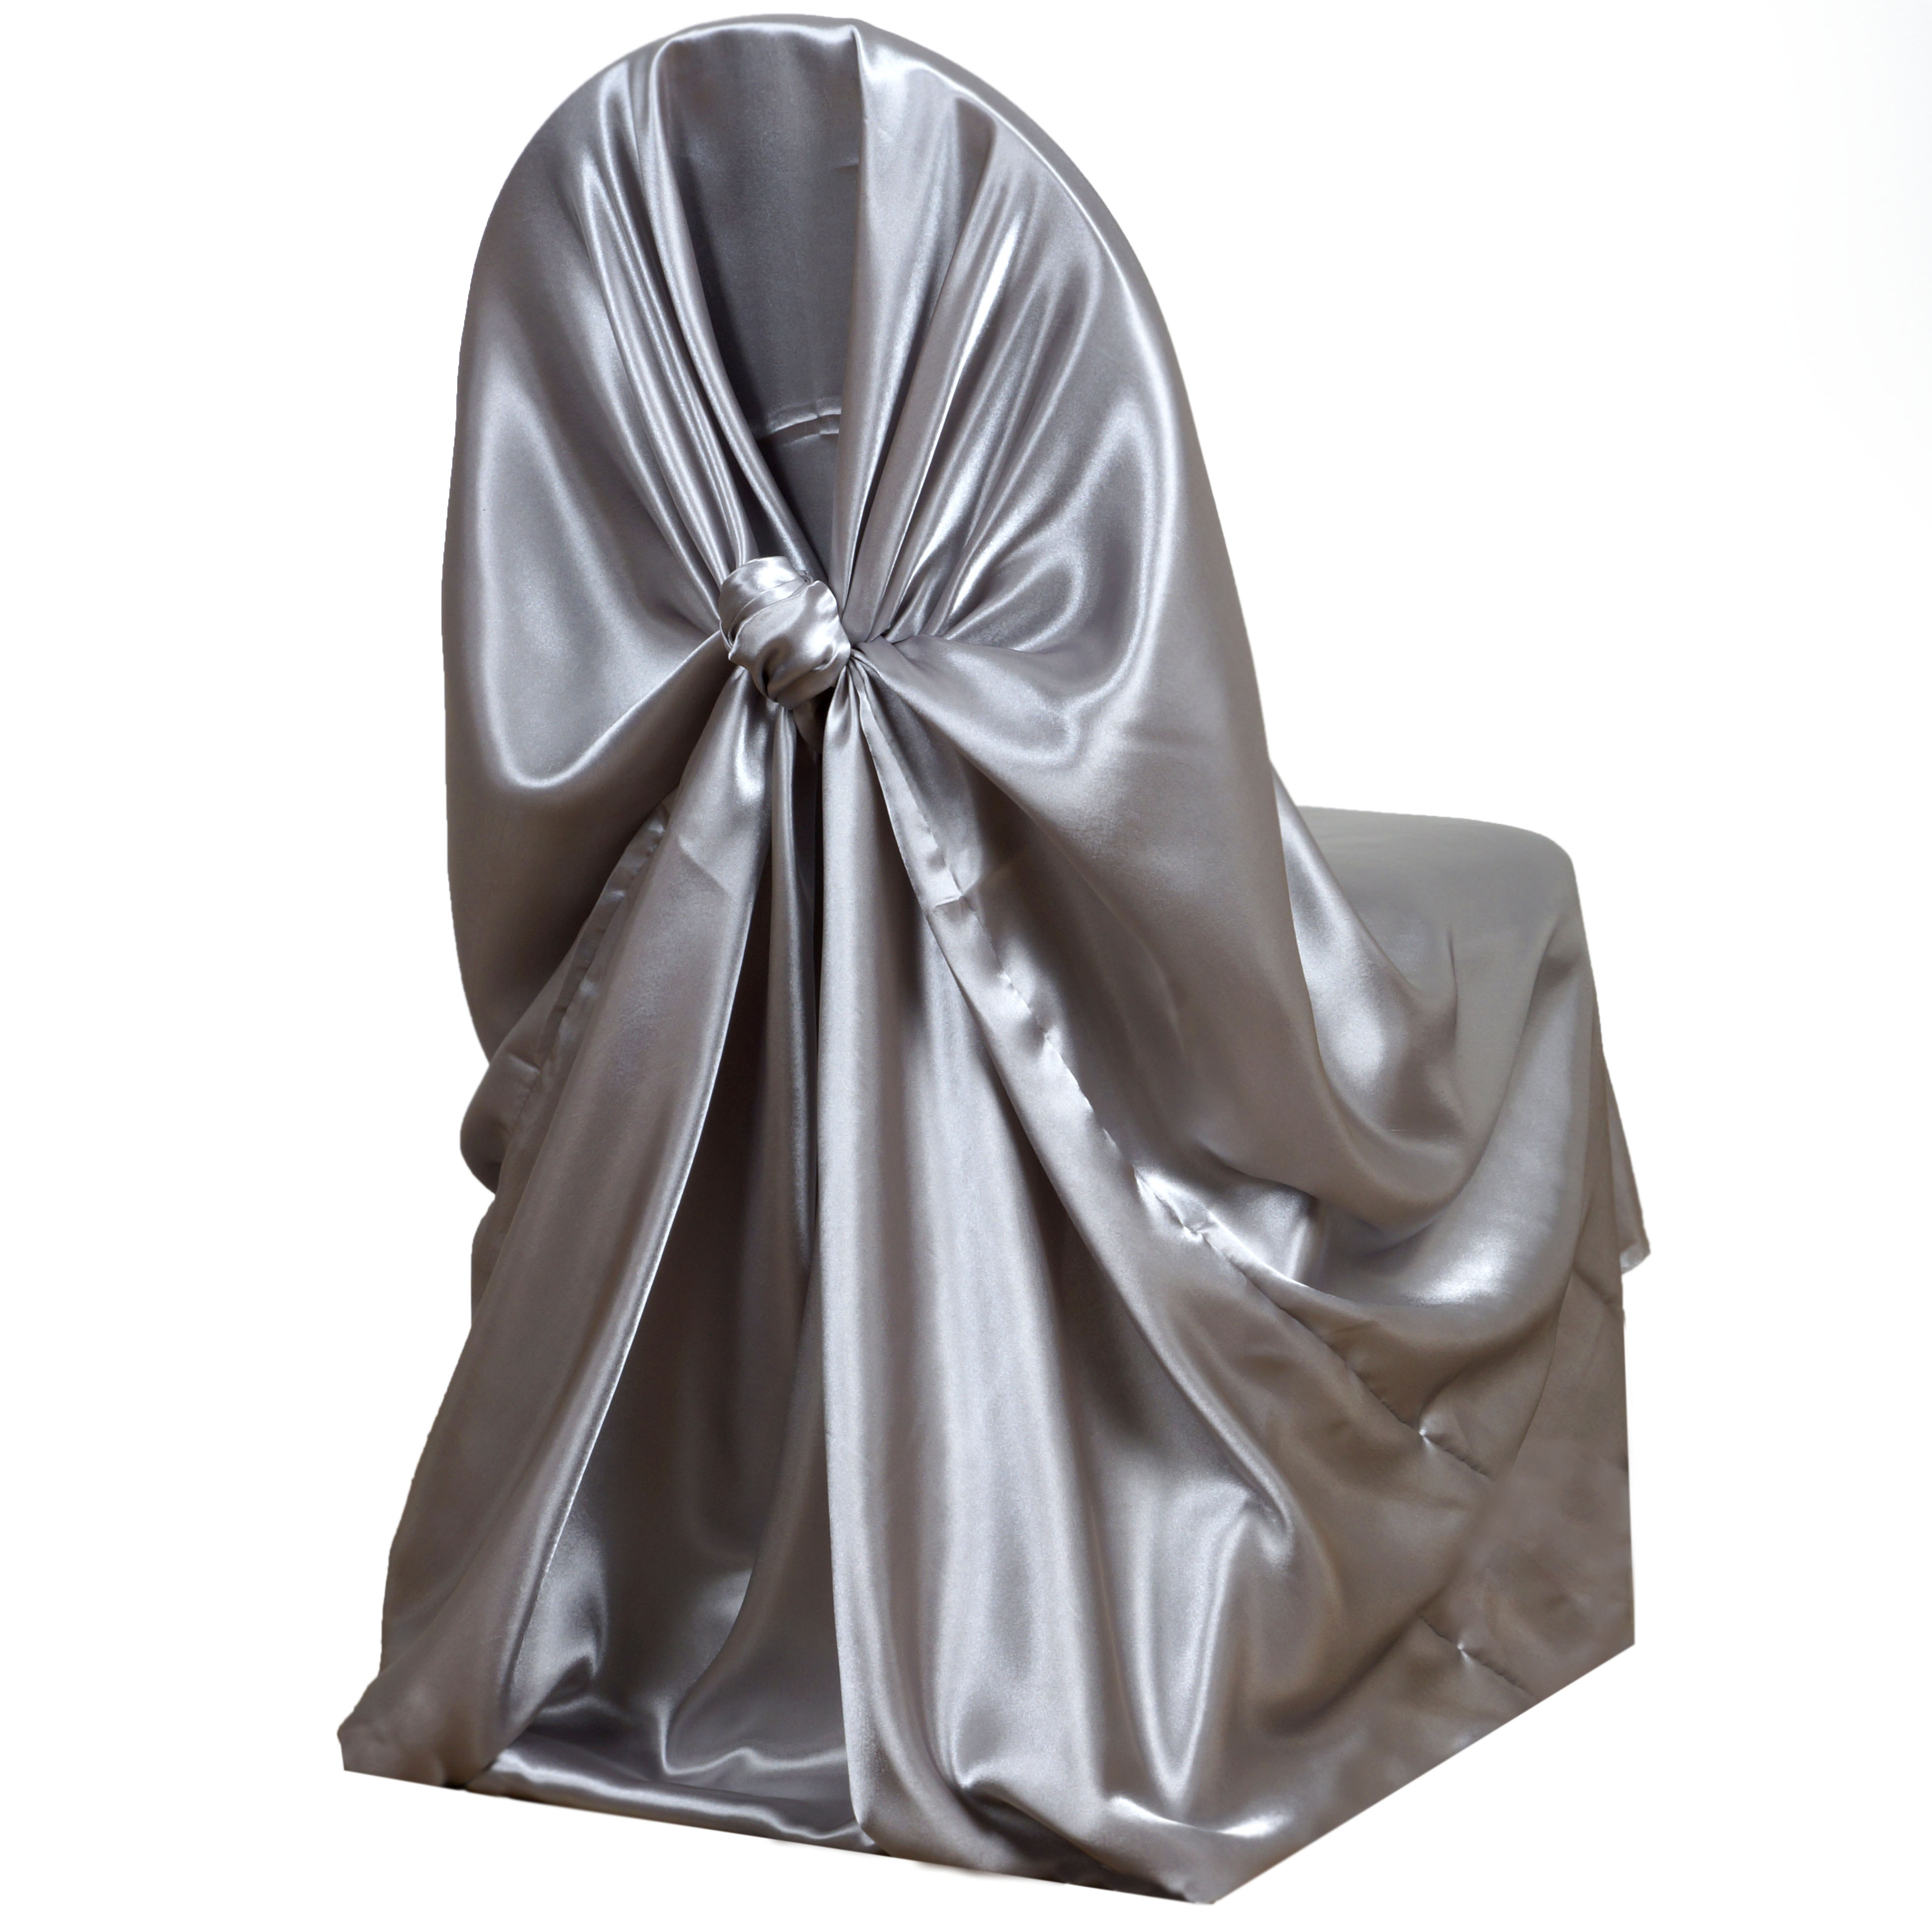 100 pcs SATIN UNIVERSAL CHAIR COVERS Wholesale Wedding Party